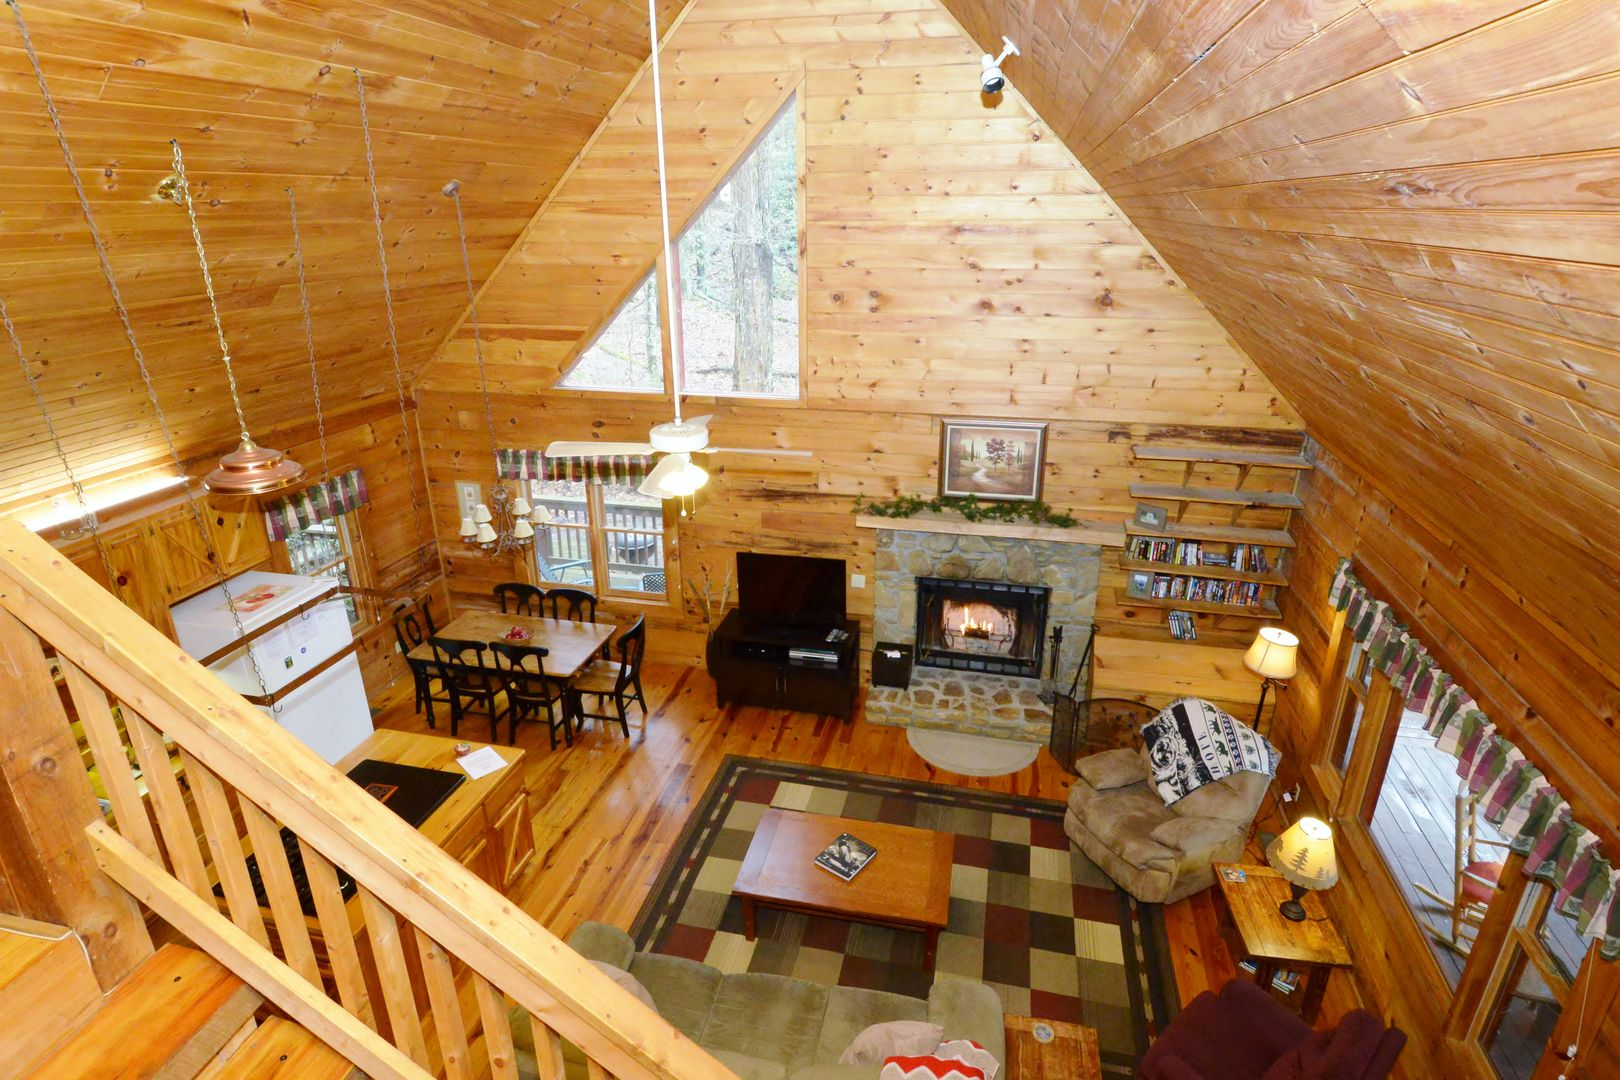 valley cabin cabins hotel log of com us booking gallery rentals this property vacation maggie misty nc home image creek